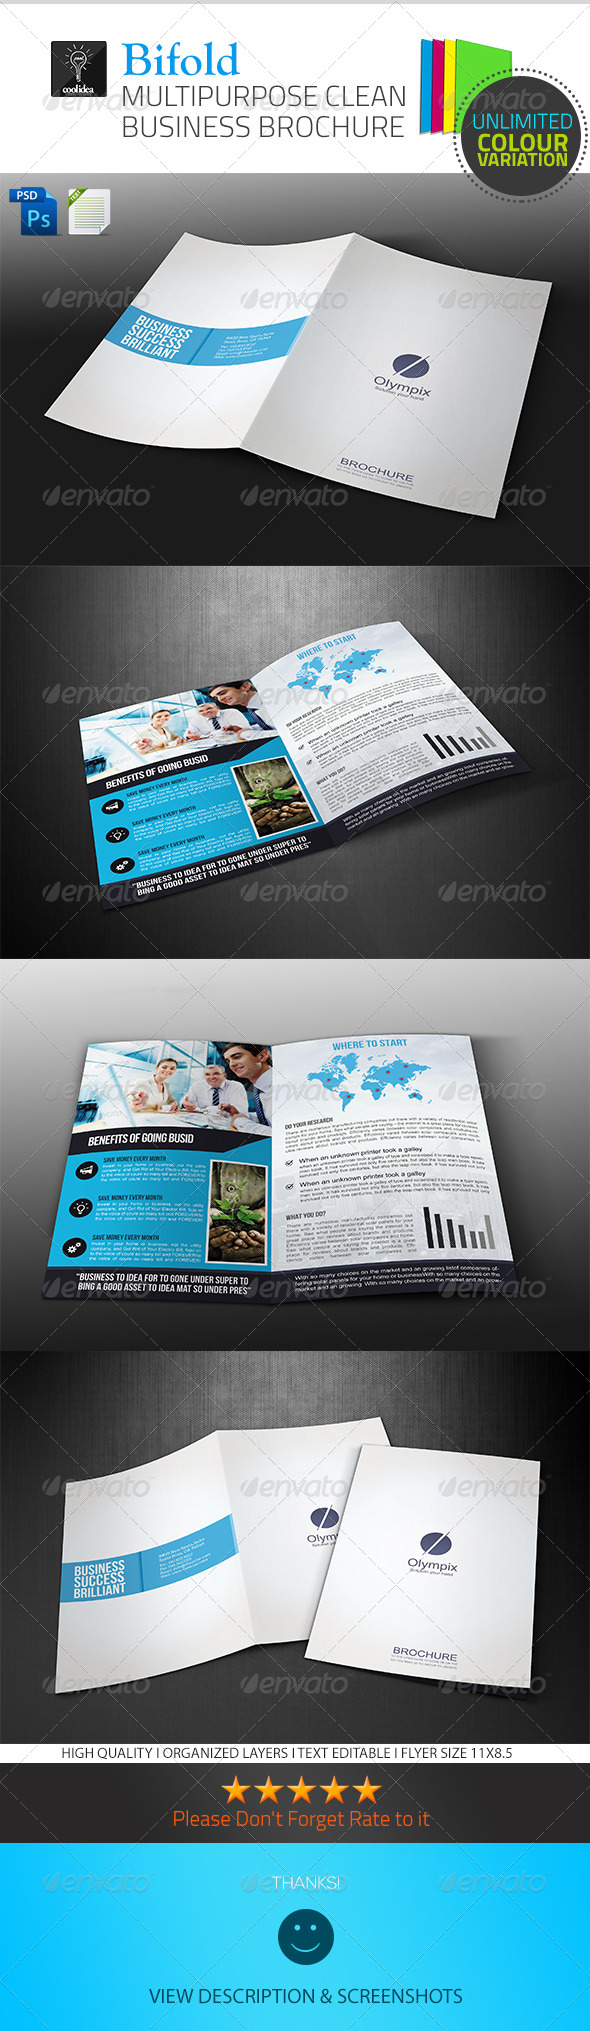 A4 Business Brochure/ Bifold Vol01 - Corporate Brochures